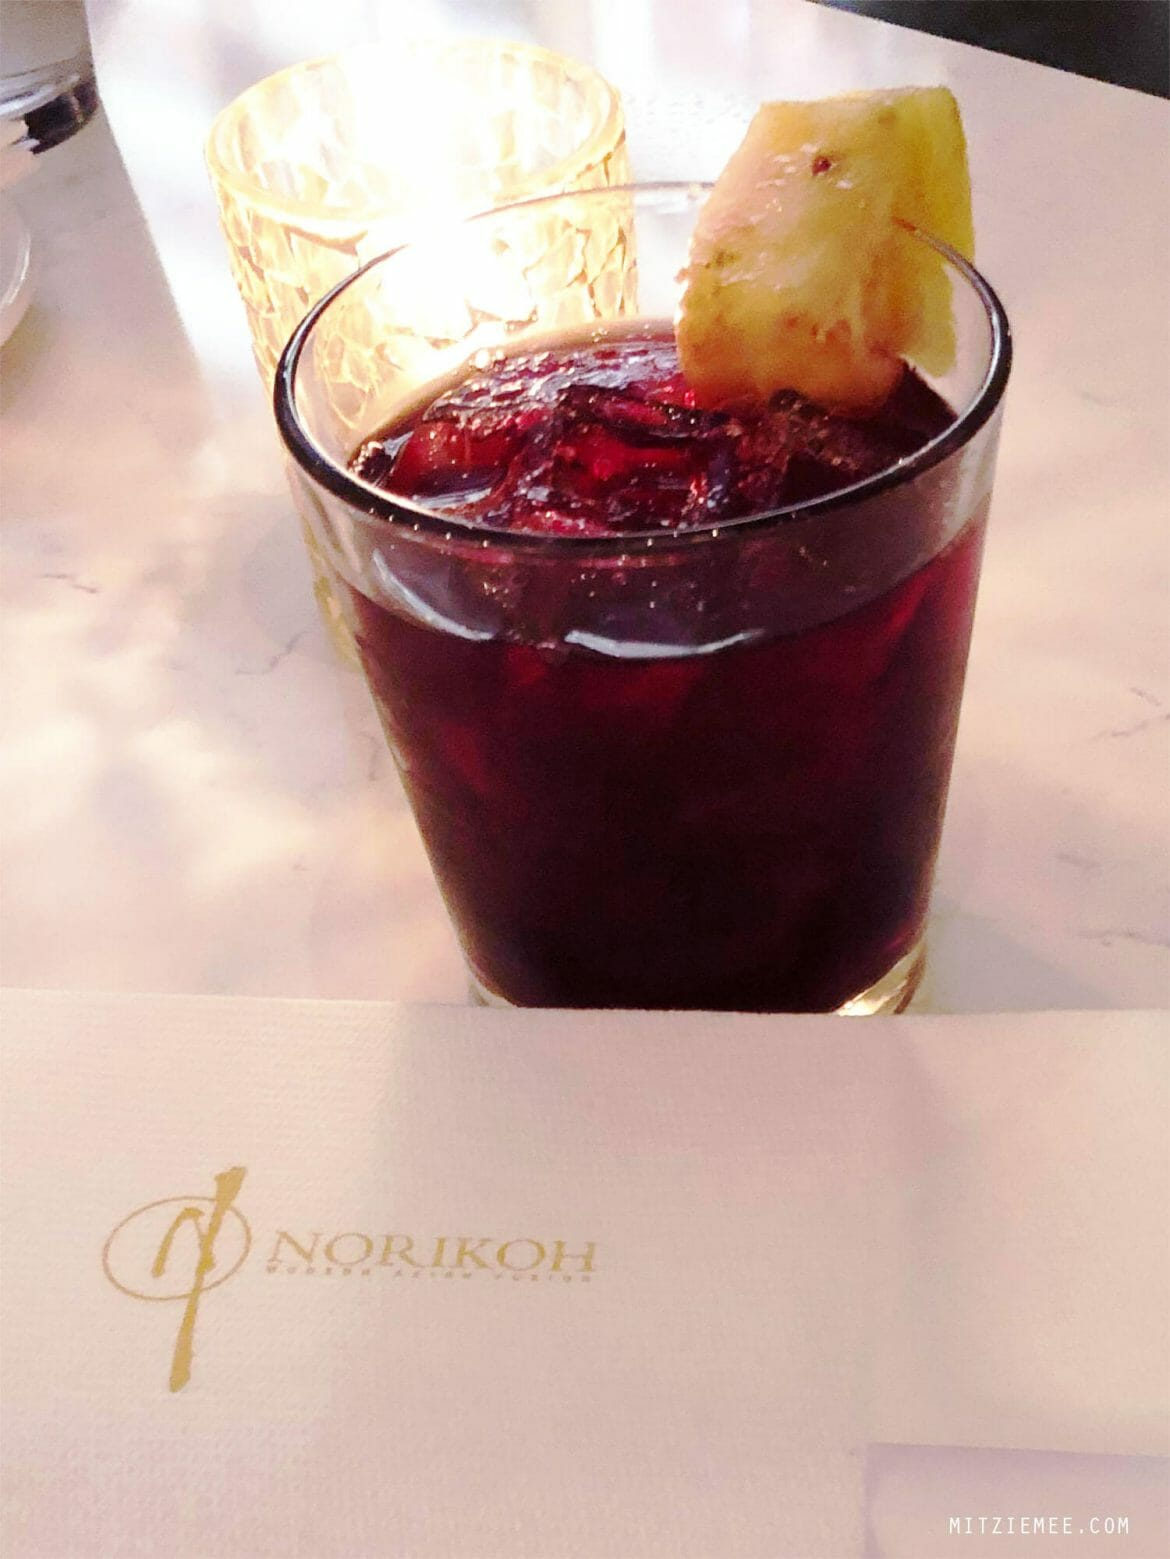 Sangria, Norikoh, Flatiron, New York City